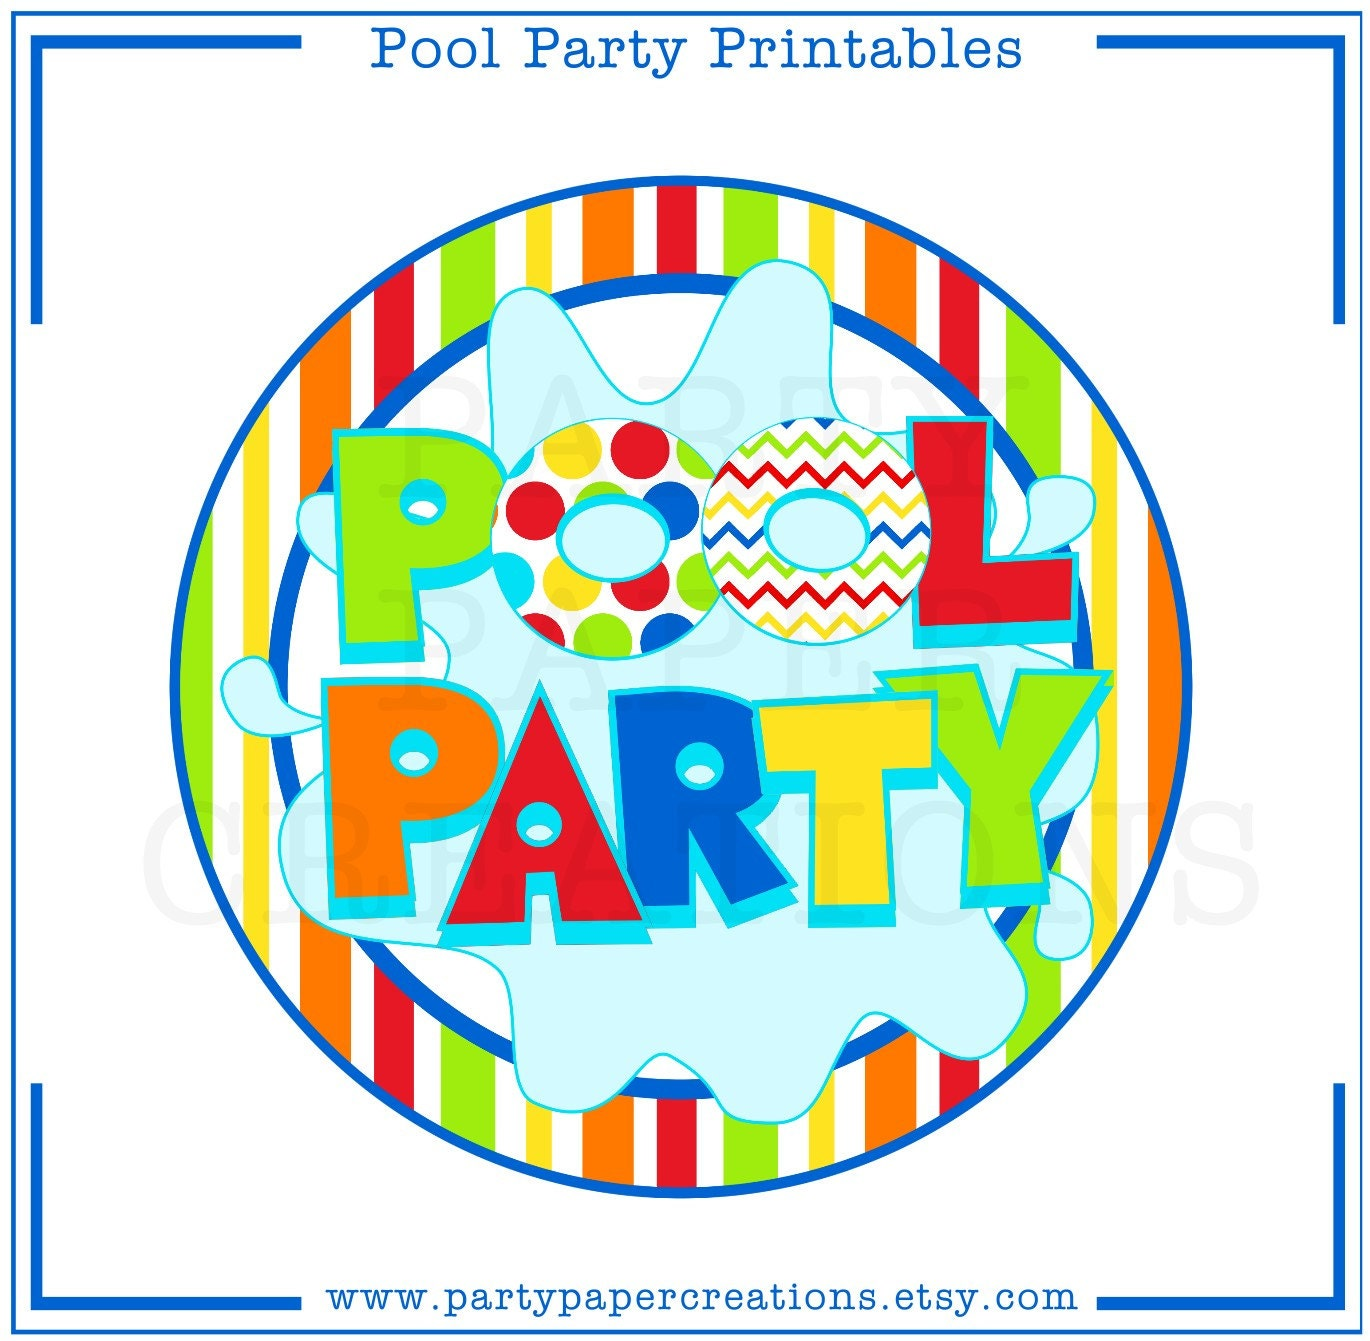 Instant download party printables pool party tablescape for Free clipart swimming pool party